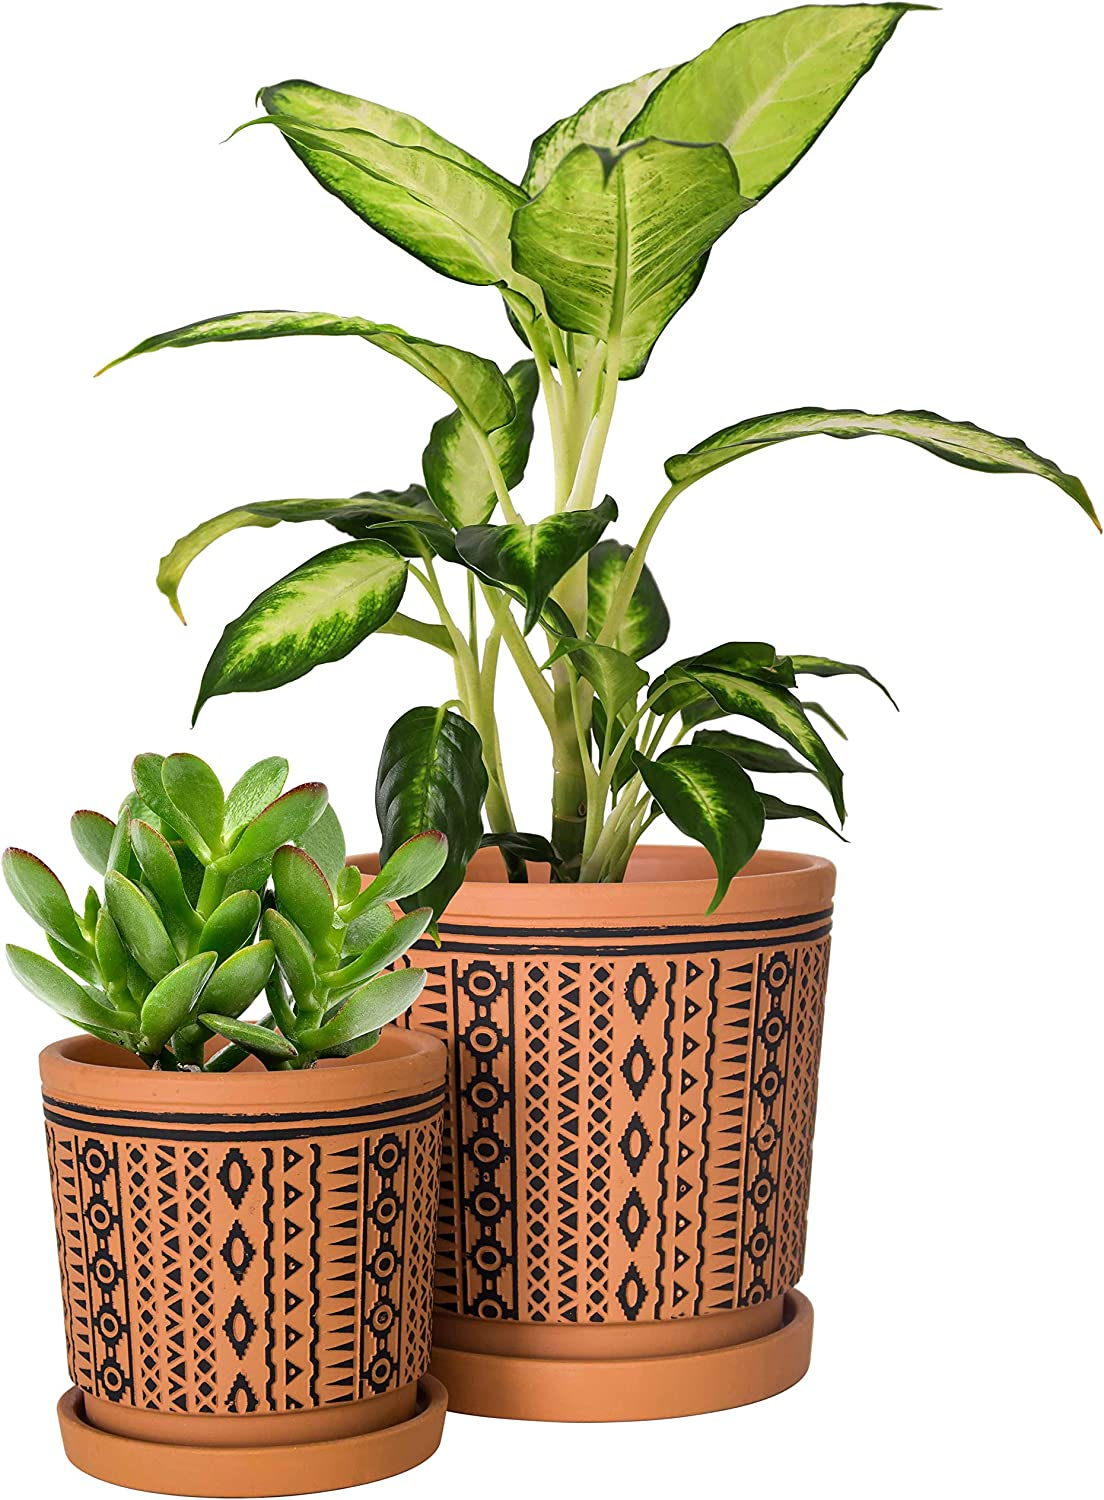 Set of 2, Terracotta Totem Design Planter Pot, 4 Inch and 6 Inch, Ceramic Plant Pot with Drainage Hole and Tray, Terracotta/Black